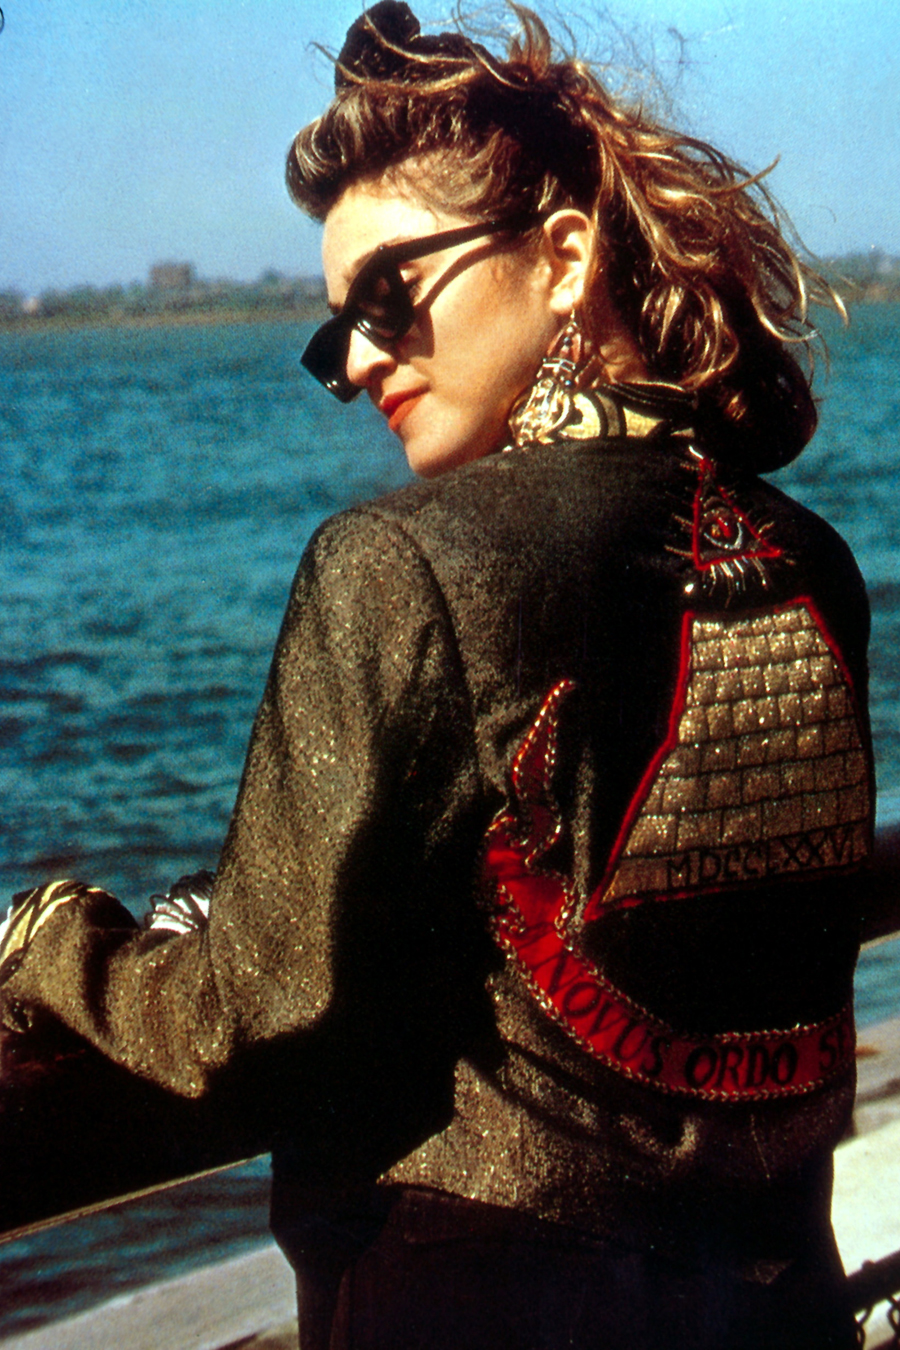 The Leather Mini: Madonna